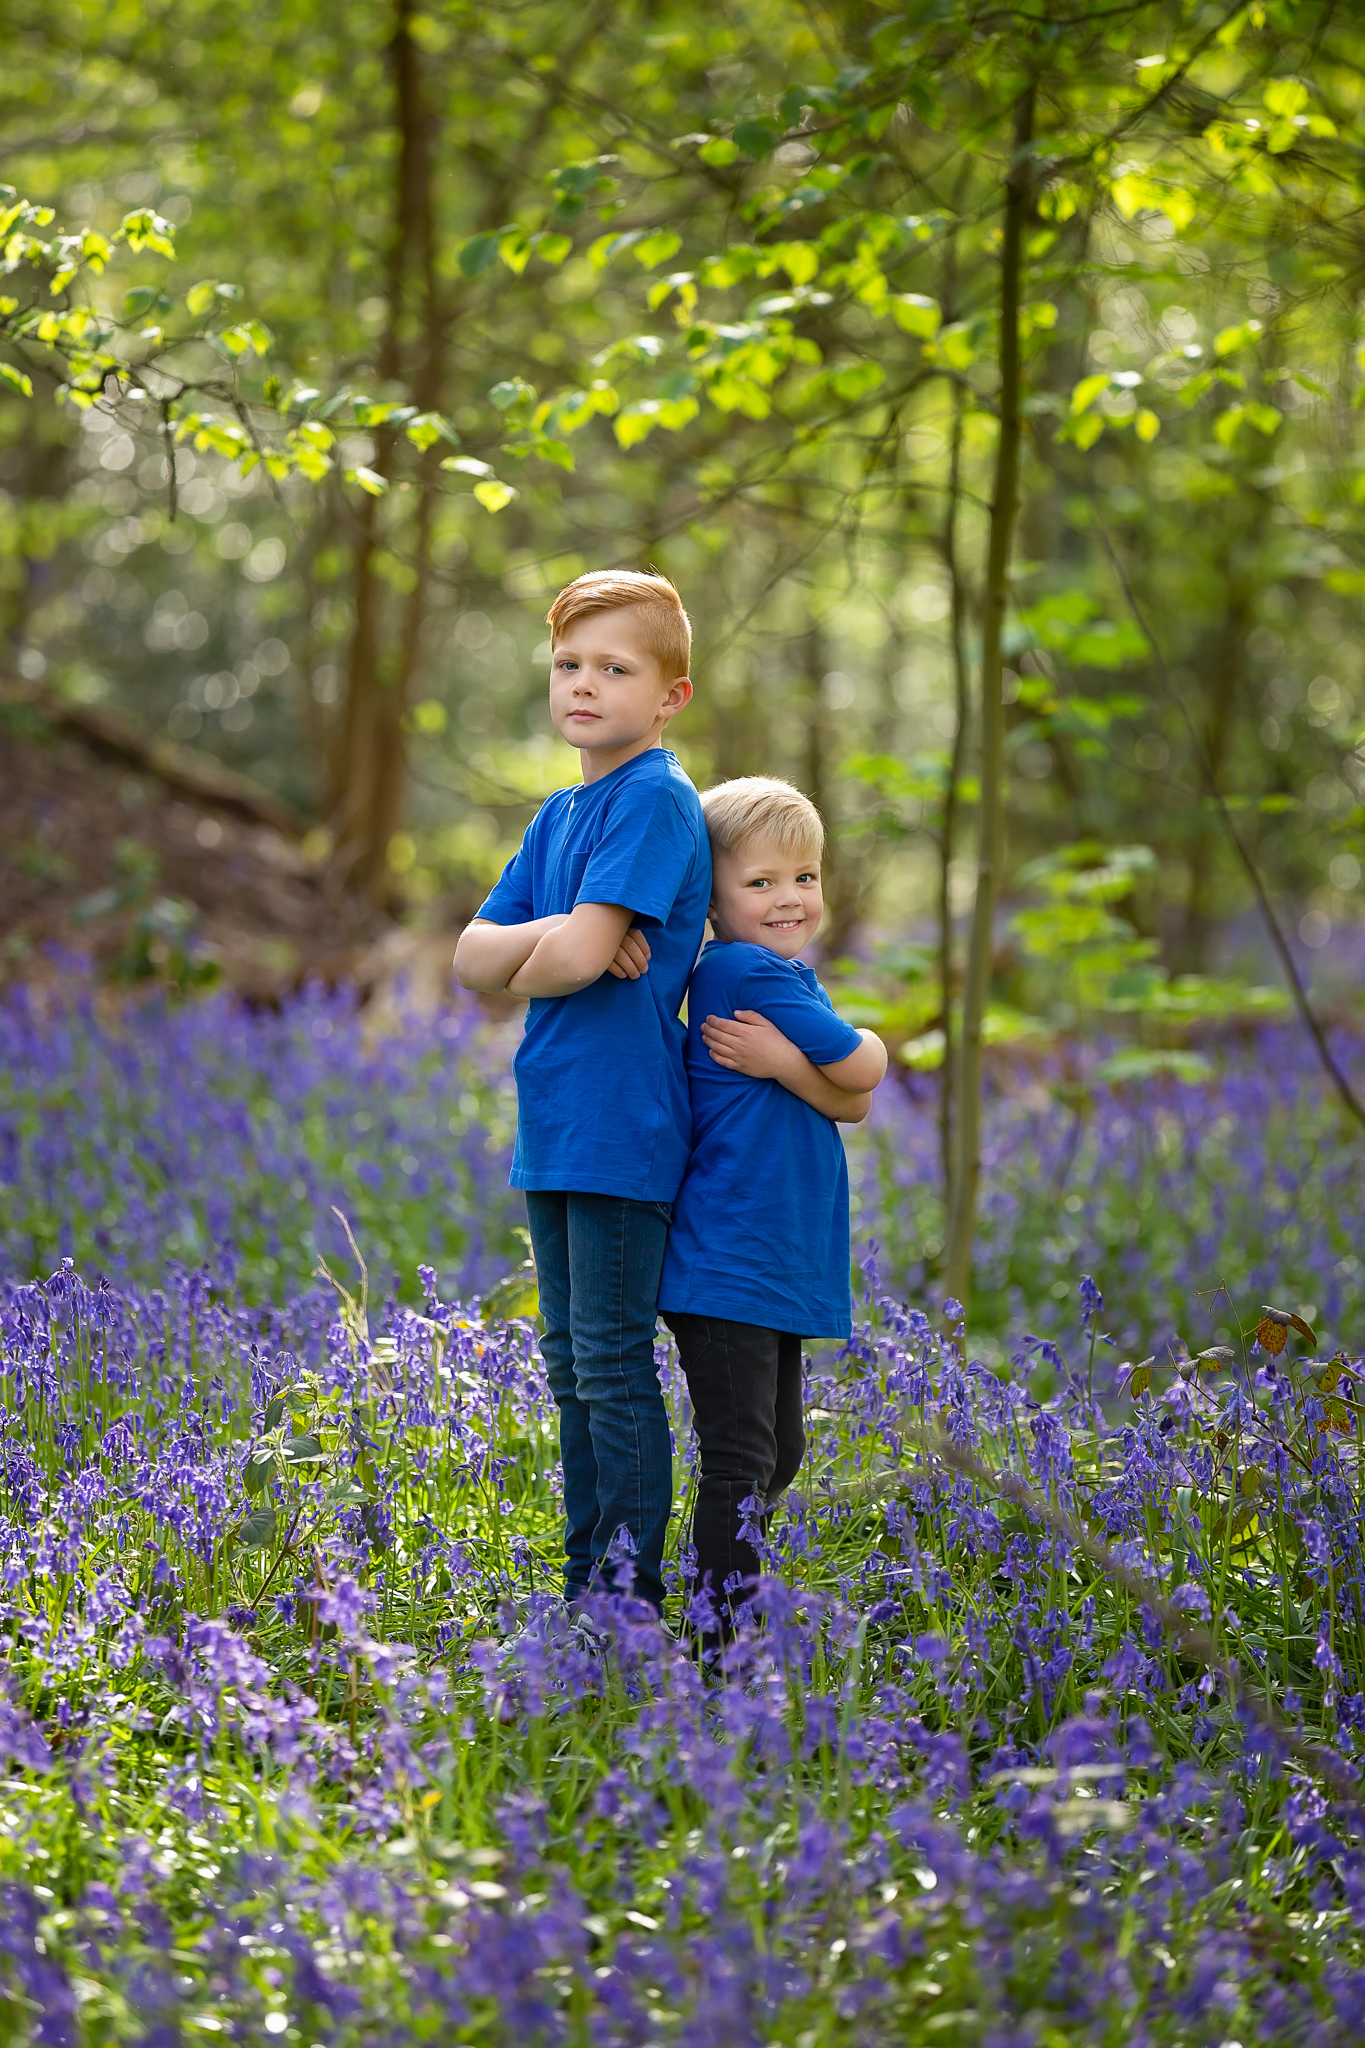 Children photographer Leeds, York, Harrogare, Bradford: twin brothers during bluebell session in Leeds, West Yorkshire